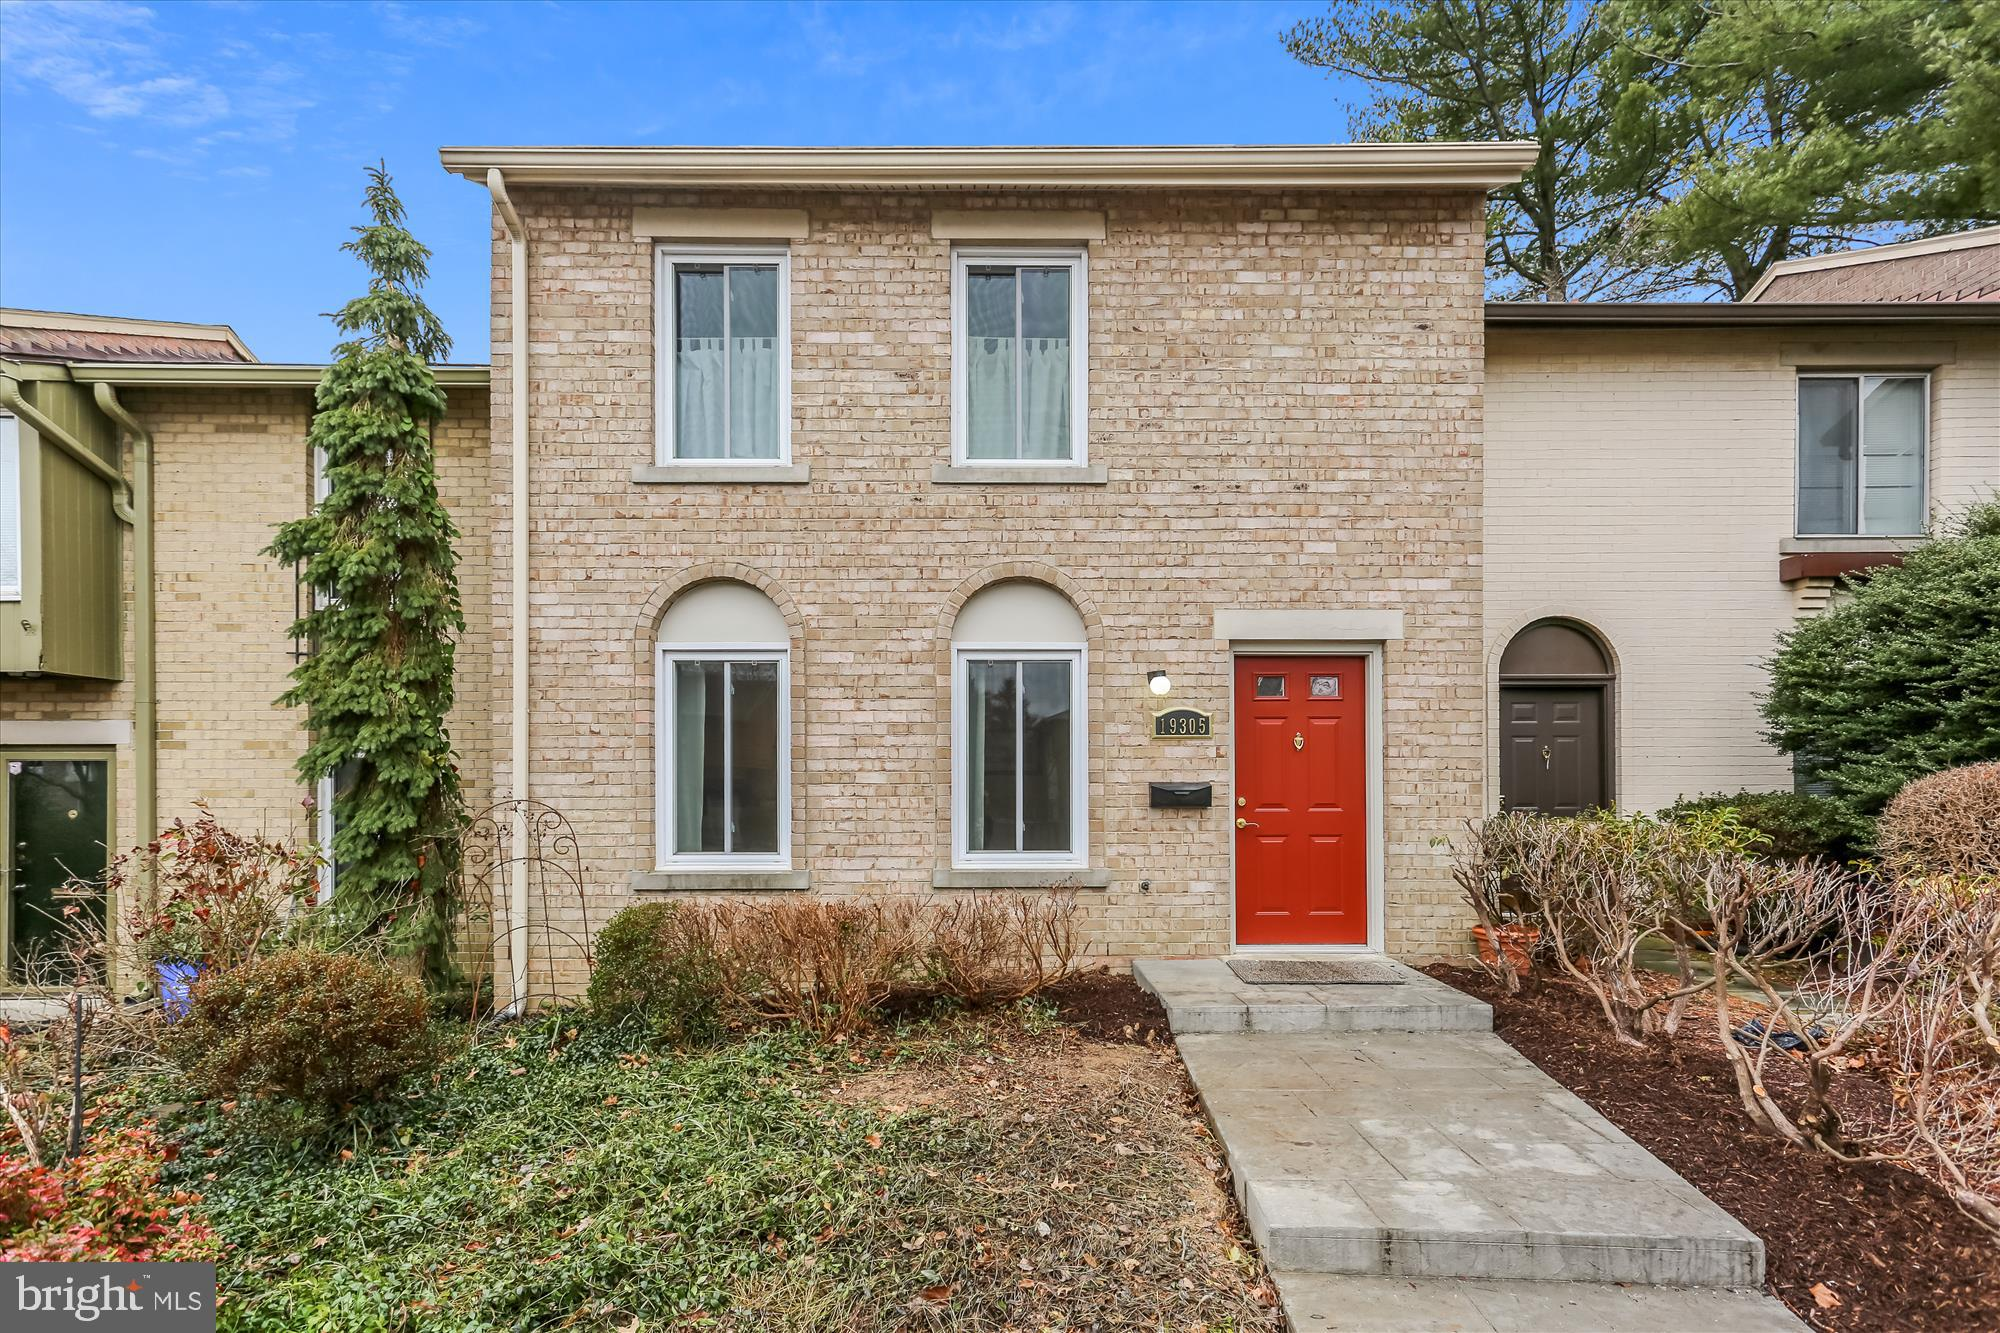 Welcome to this light filled townhouse with good sized living and dining rooms as well as an updated